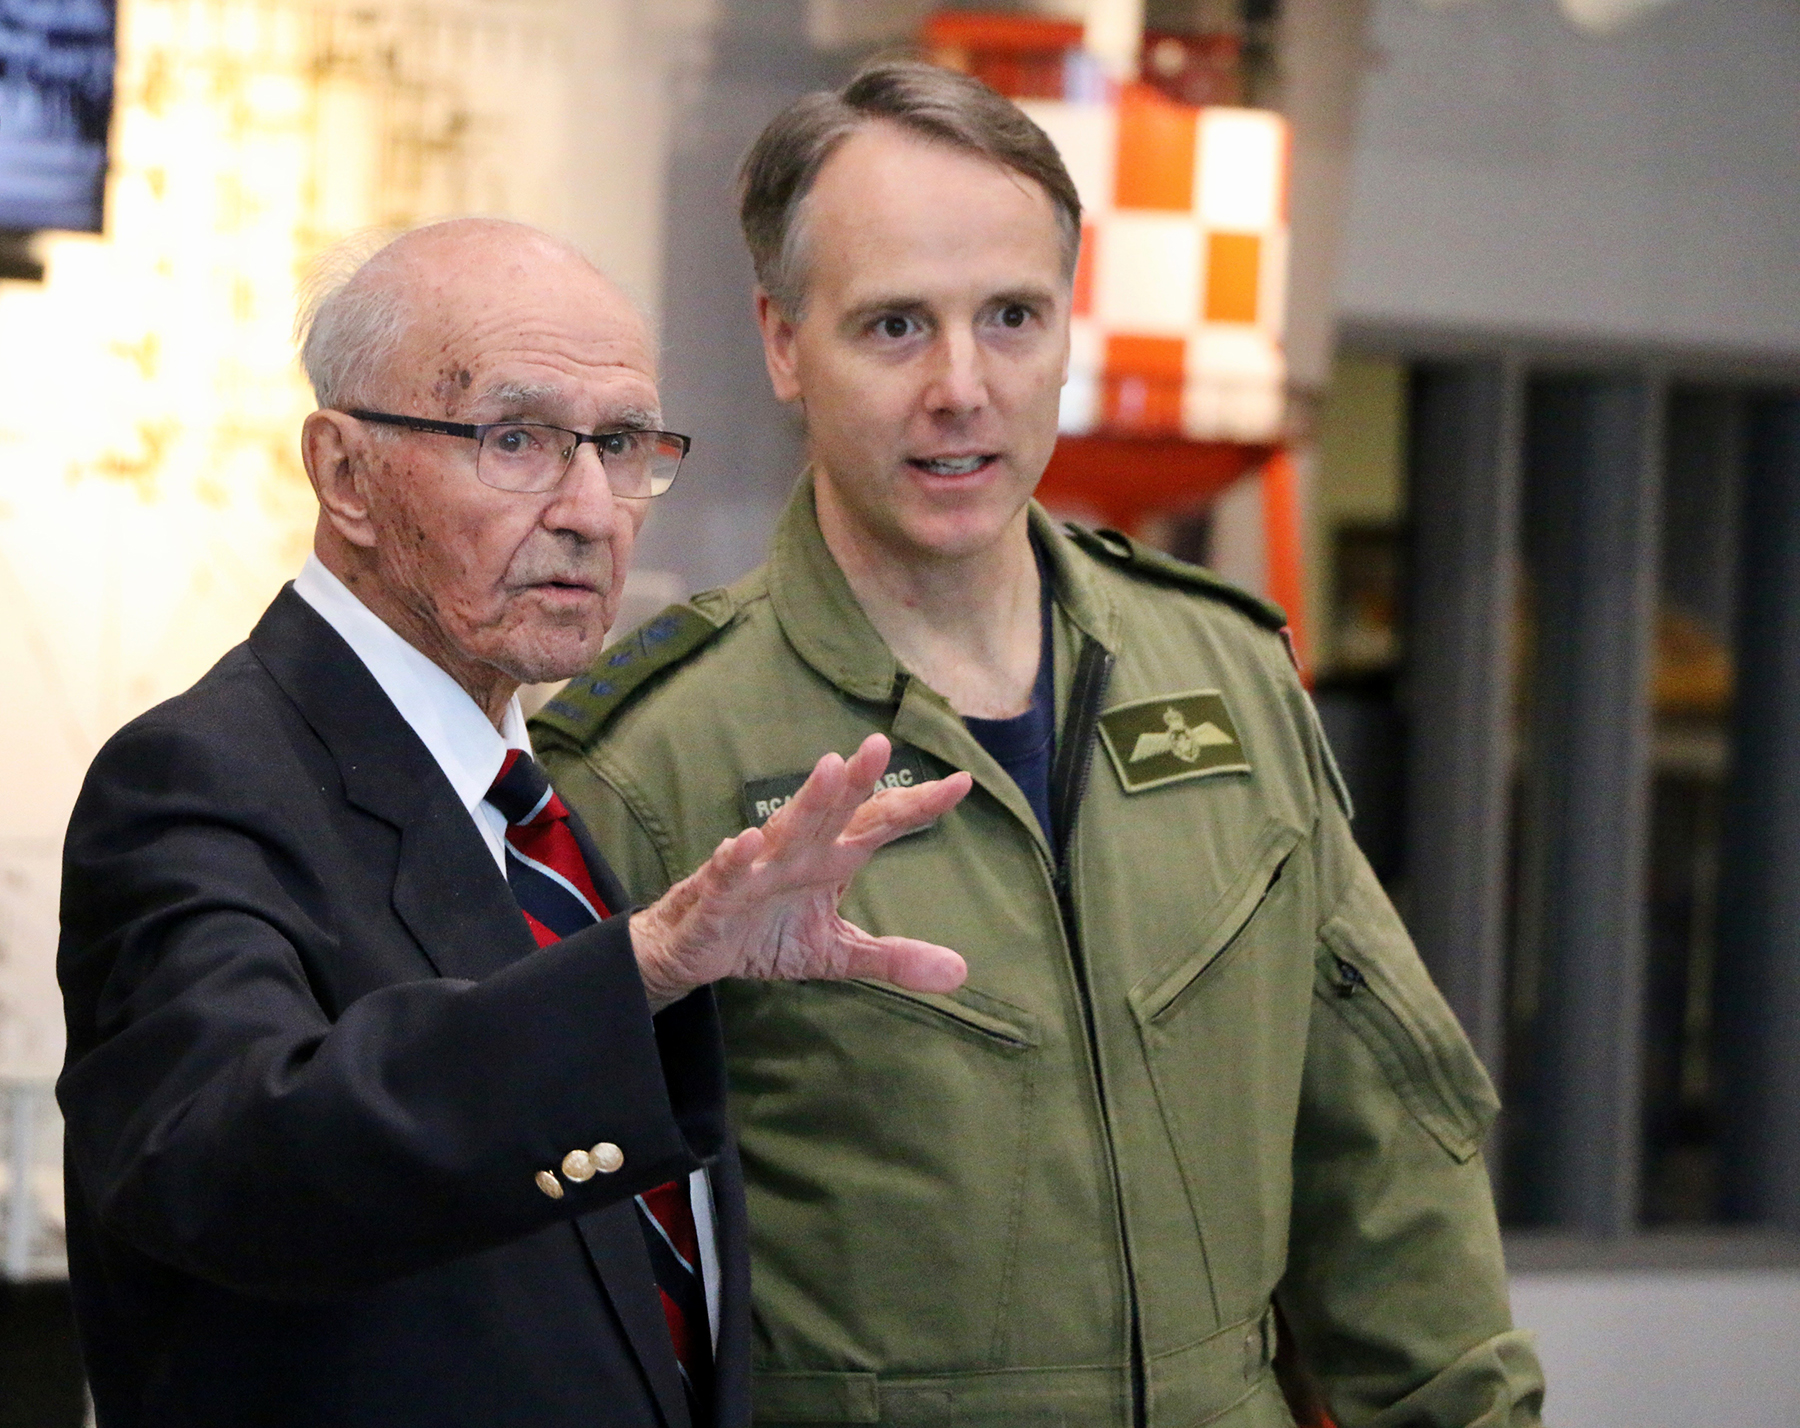 A photograph of an older man wearing a dark blazer, white shirt and striped tie standing next to a younger man wearing an olive green flight suit.